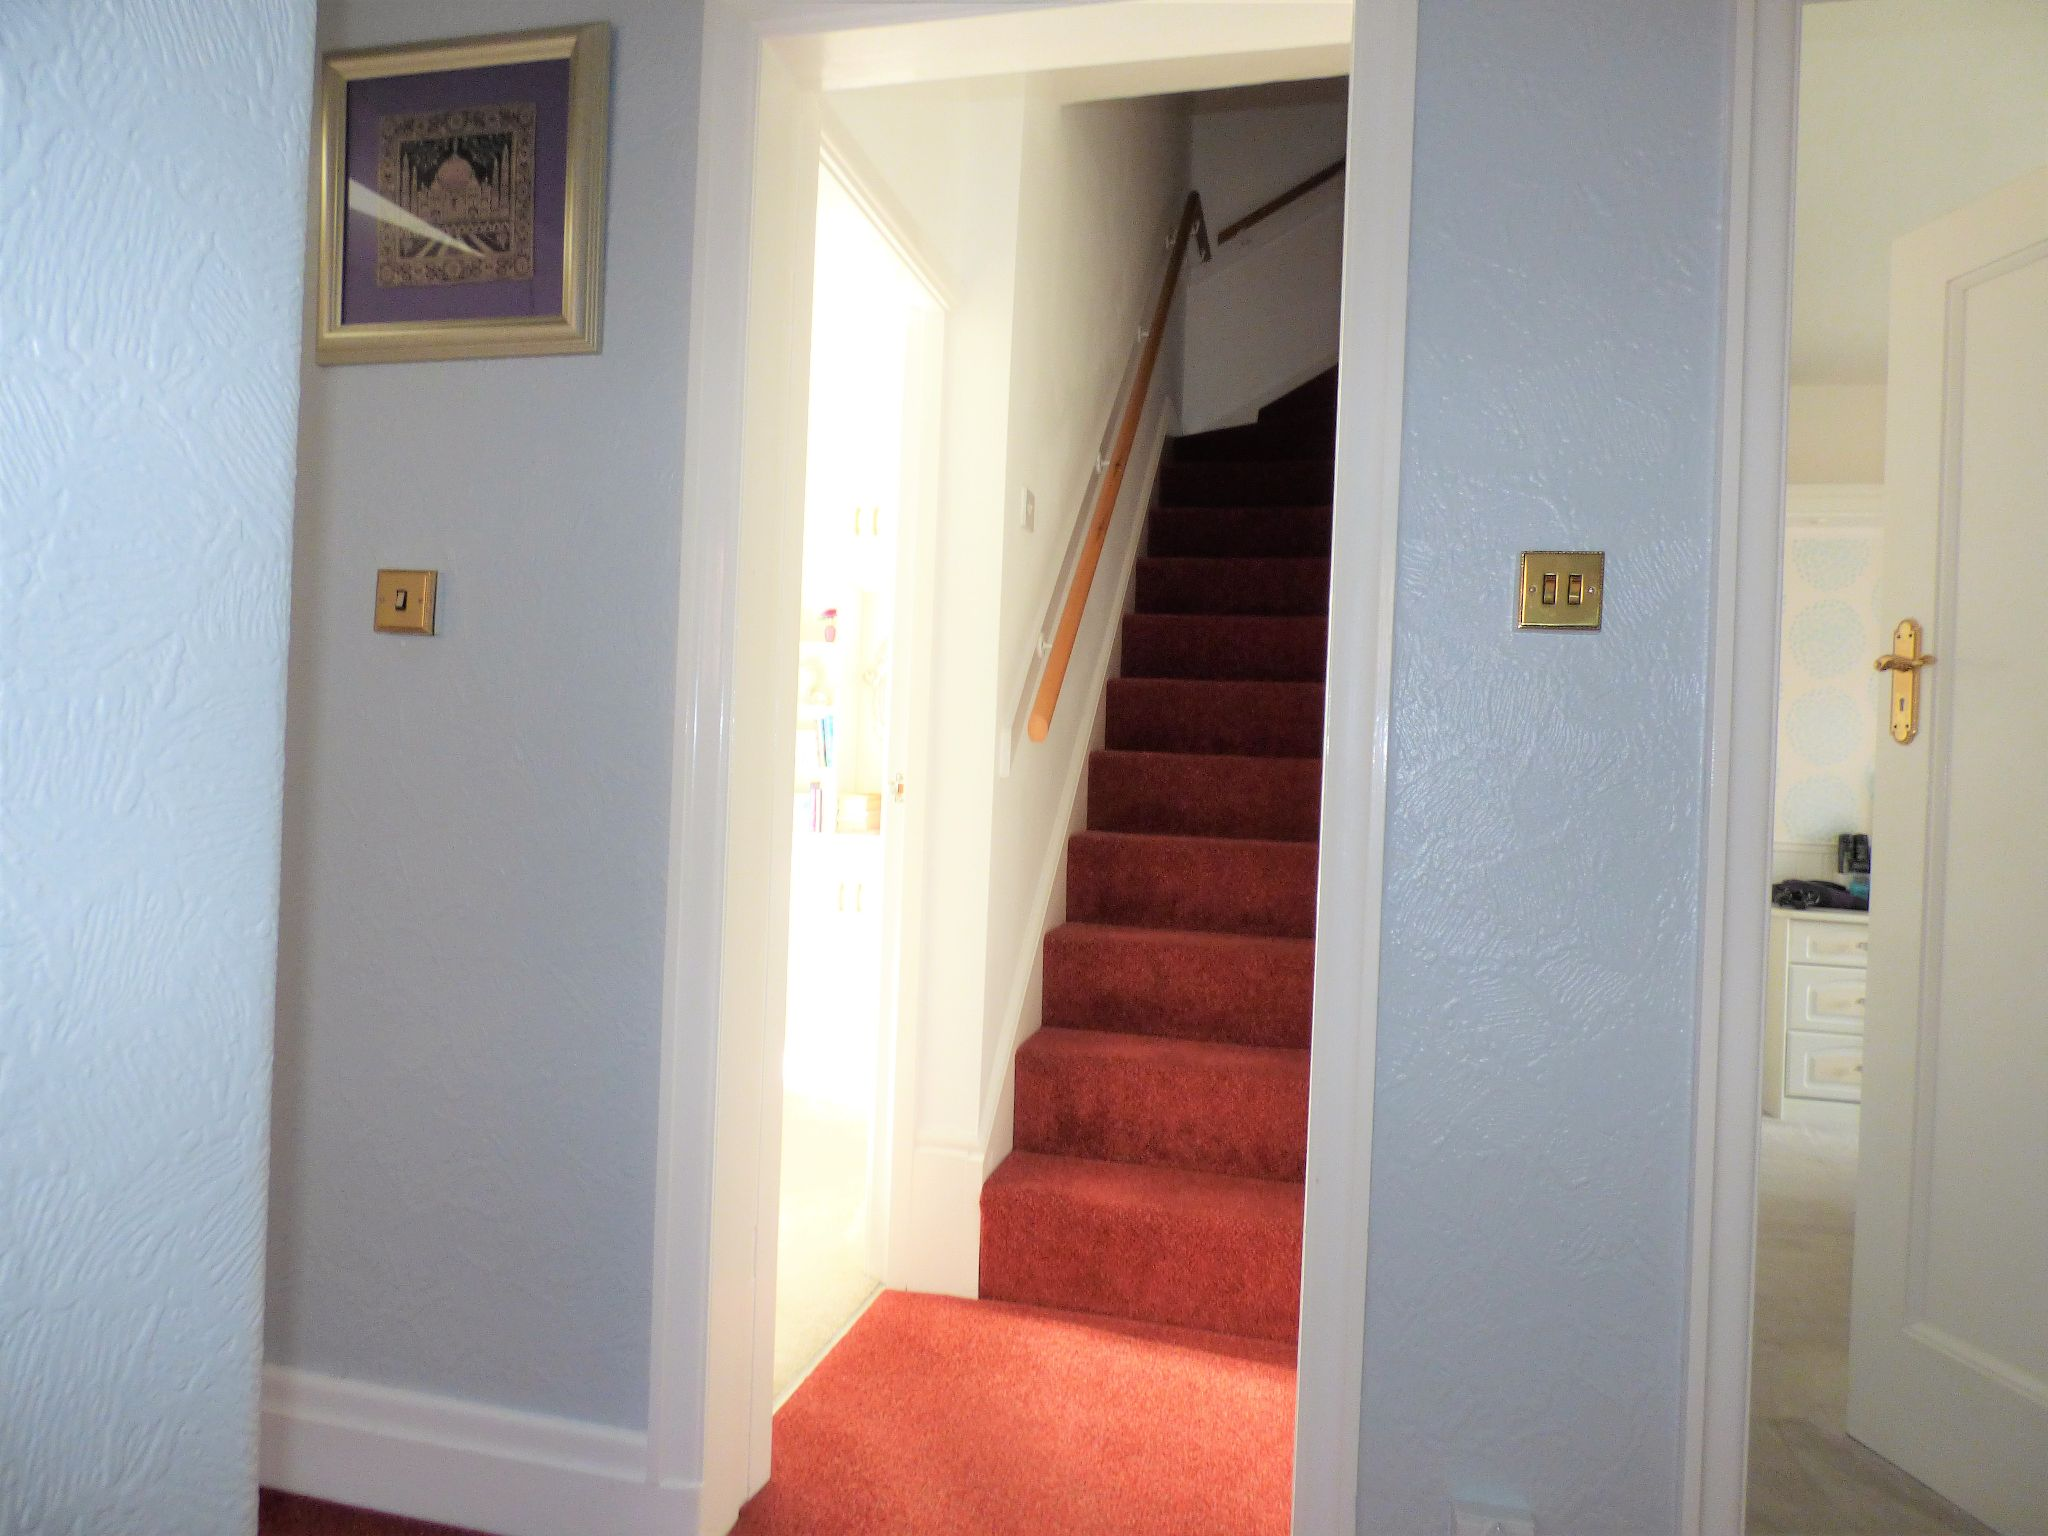 4 Bedroom Semi-detached House For Sale - Photograph 9